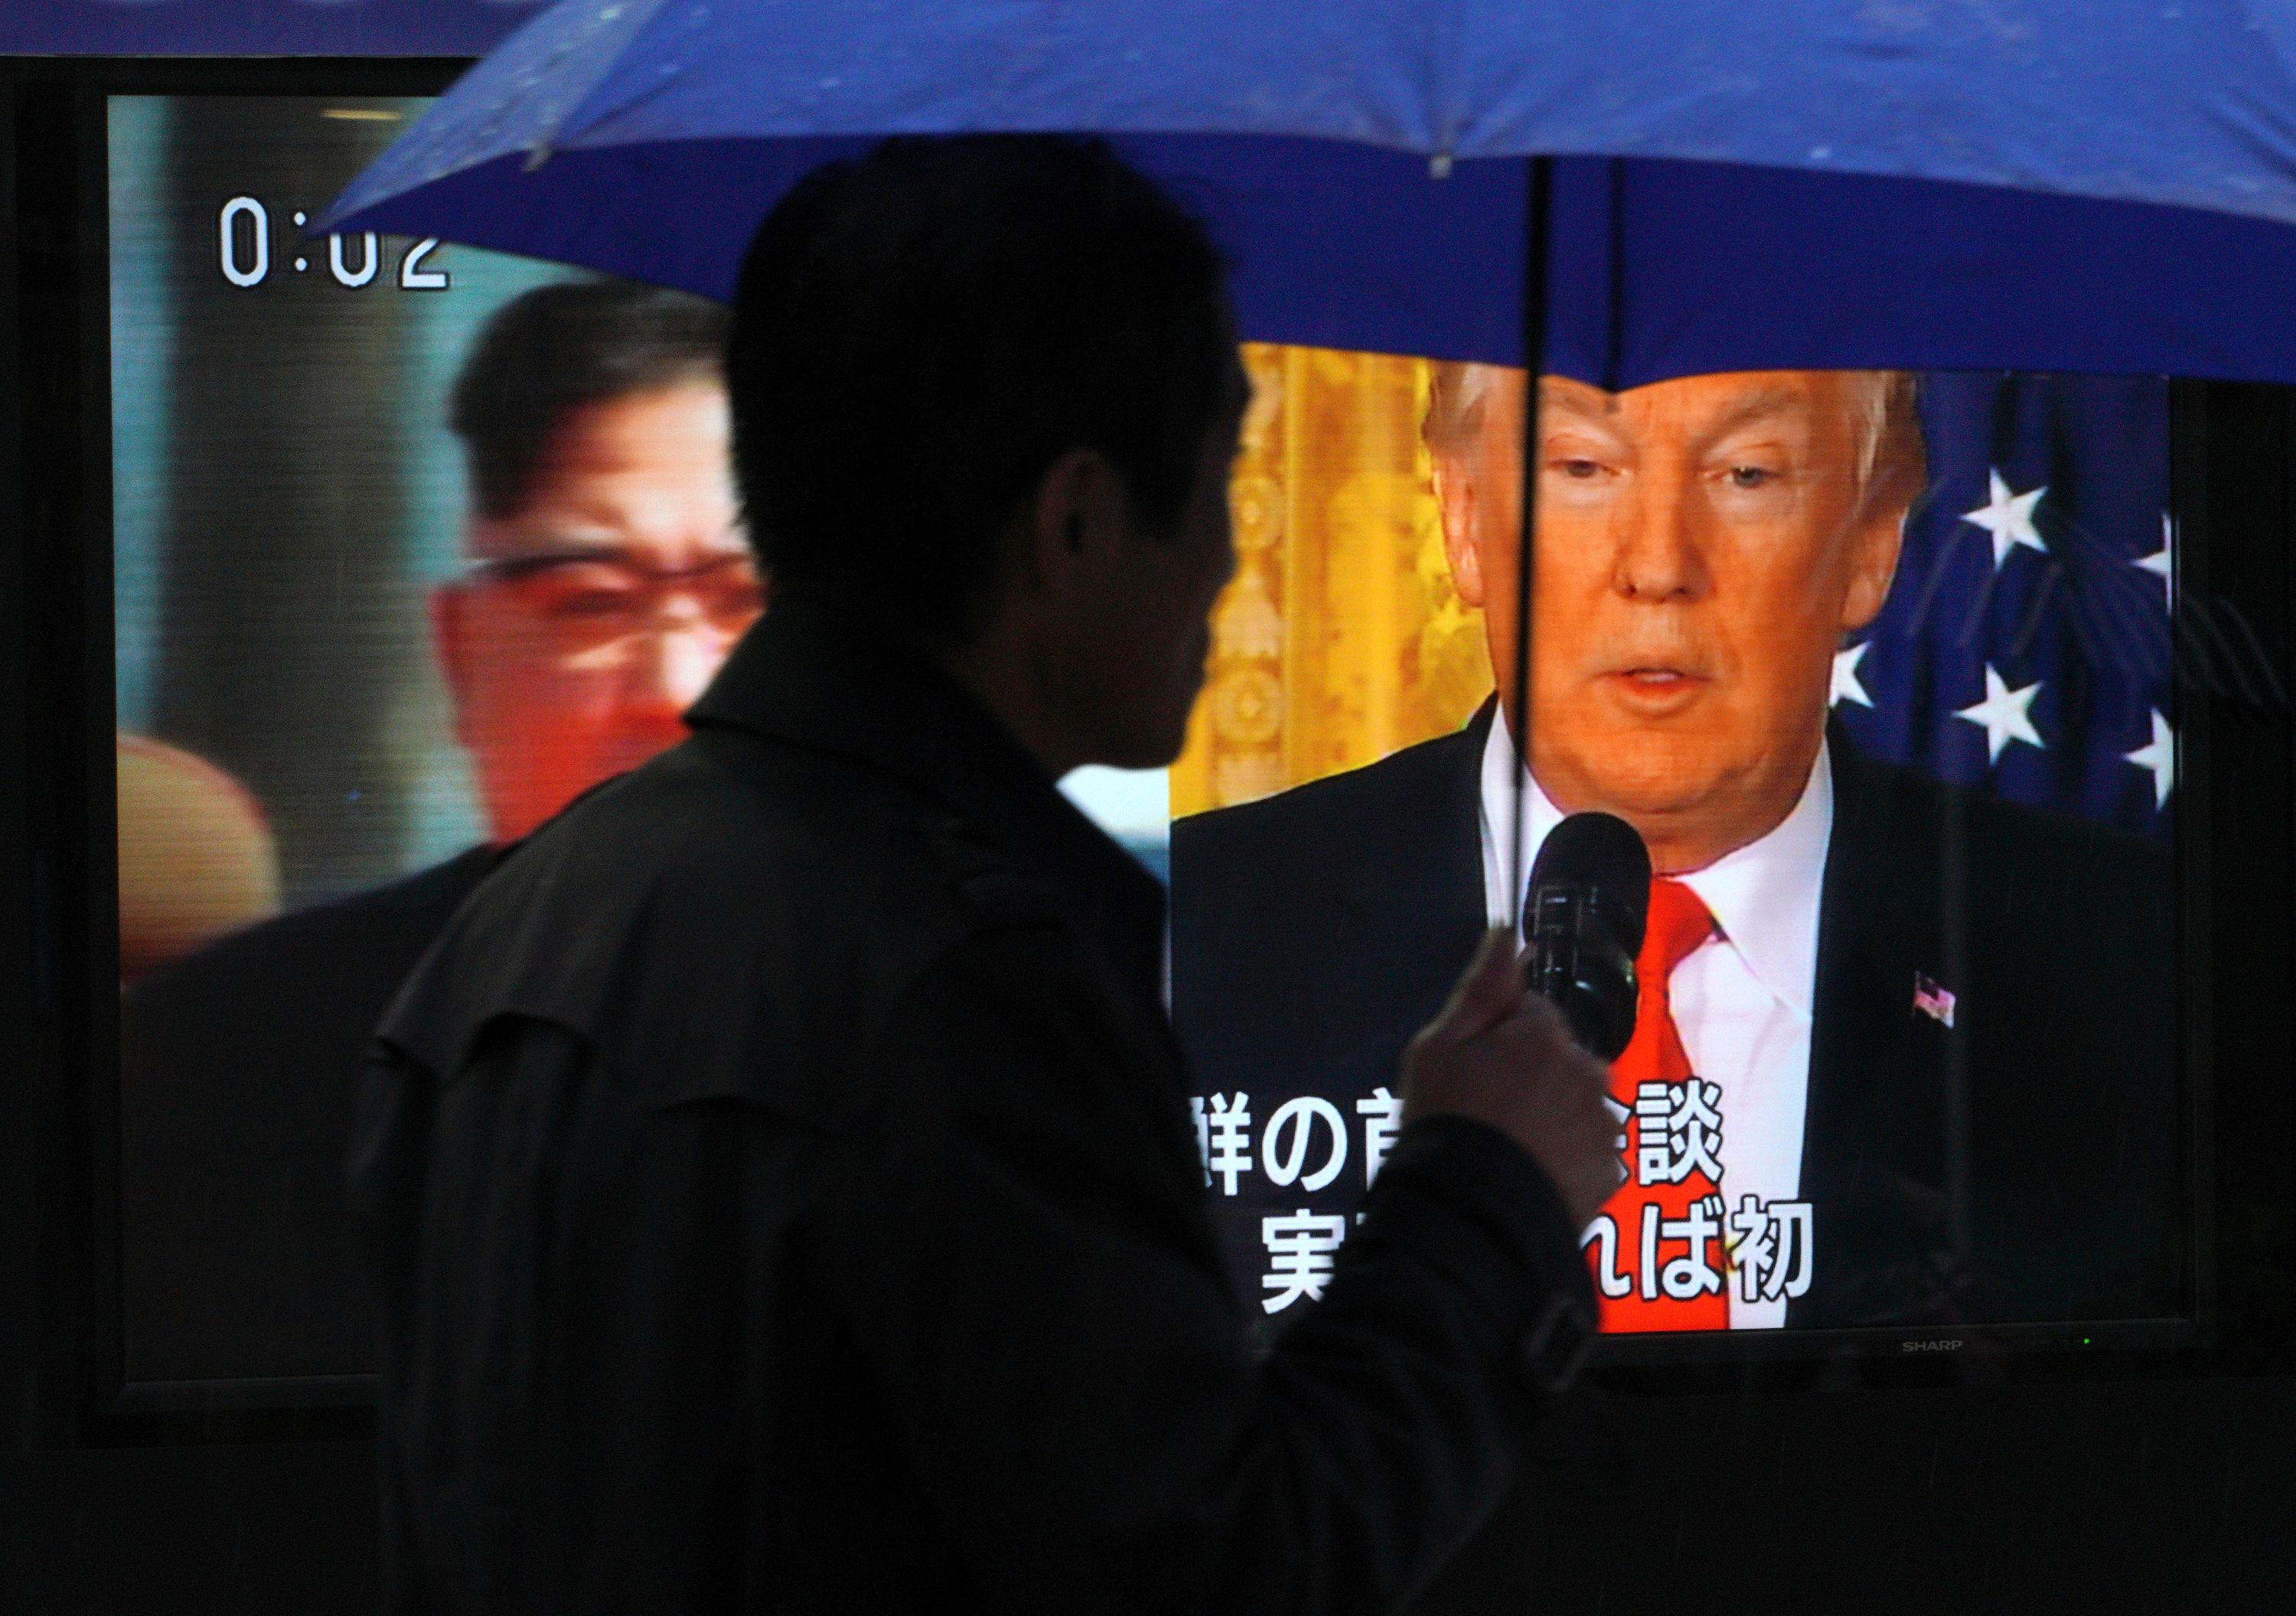 "A man watches a TV screen showing North Korean leader Kim Jong Un, left, and U.S. President Donald Trump, right, in Tokyo Friday, March 9, 2018. Trump has accepted an offer of a summit from the North Korean leader and will meet with Kim Jong Un by May, a top South Korean official said Thursday, in a remarkable turnaround in relations between two historic adversaries. The signs read: "" Trump has accepted an offer of a summit from the North Korean leader and will meet with Kim by May."" (AP Photo/Eugene Hoshiko)"